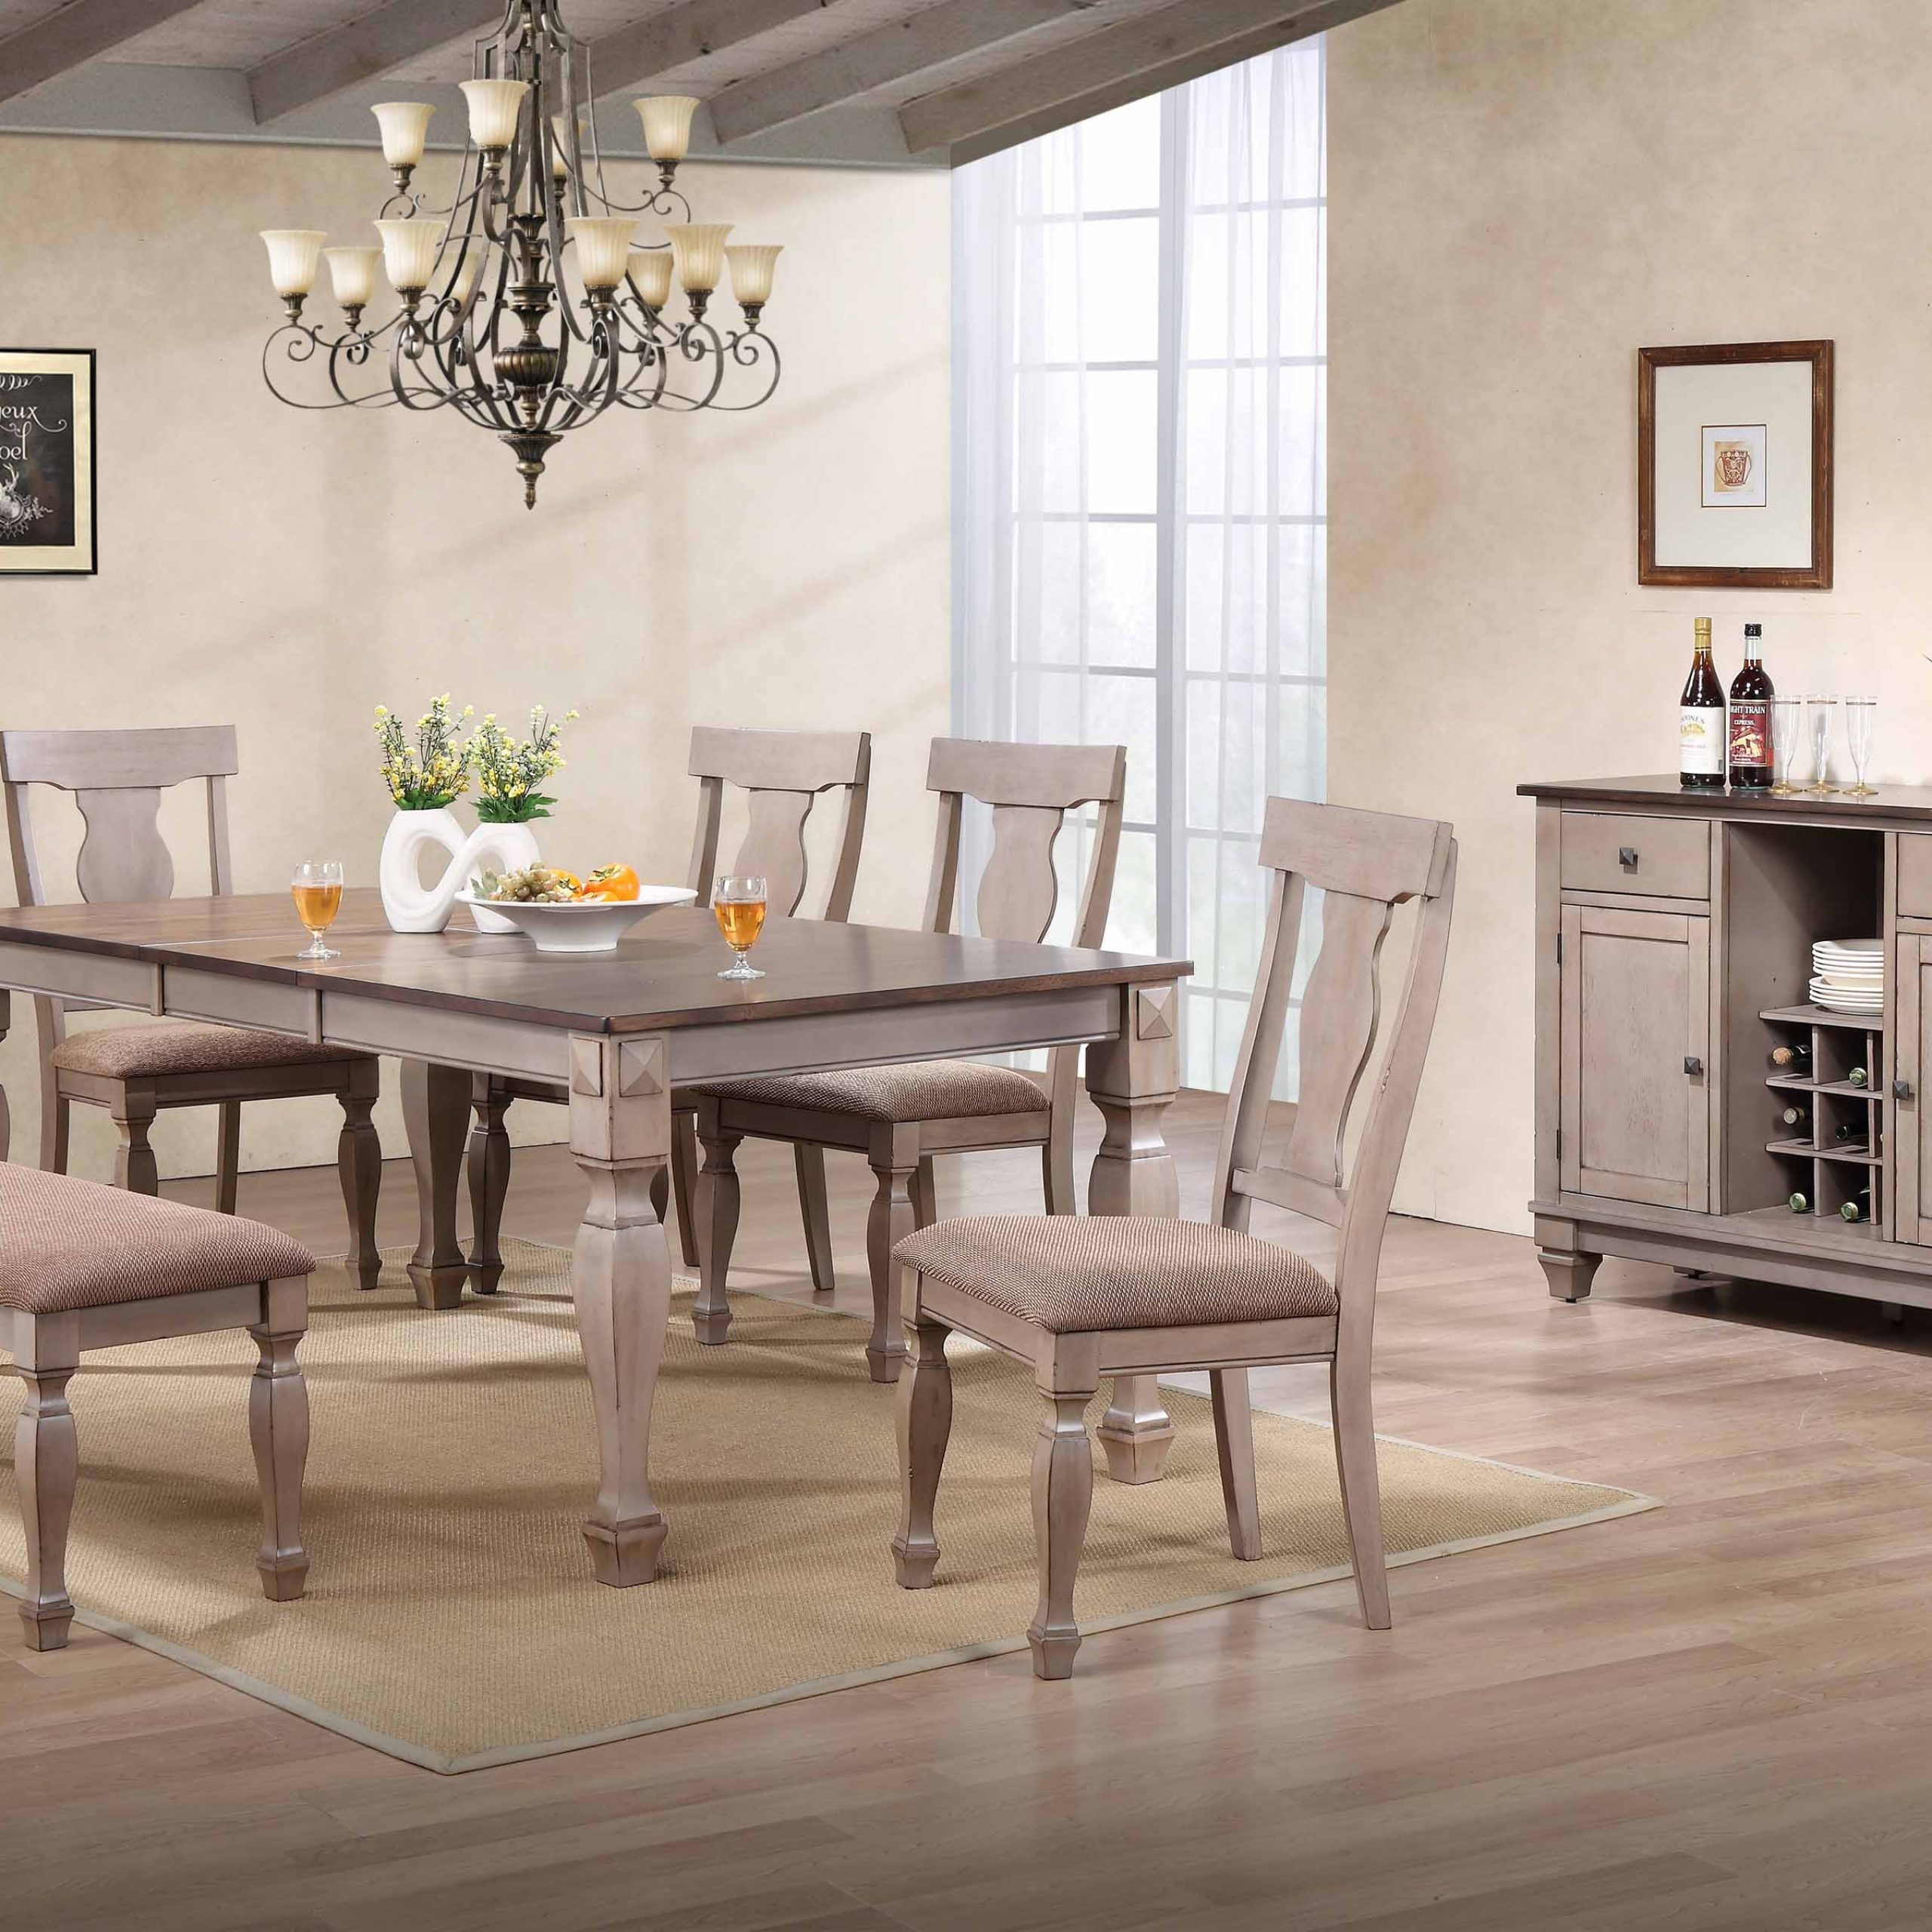 Fashionable Joanna 7 Piece Extendable Dining Set, Brown Wood With Regard To Tudor City 28'' Dining Tables (View 13 of 20)